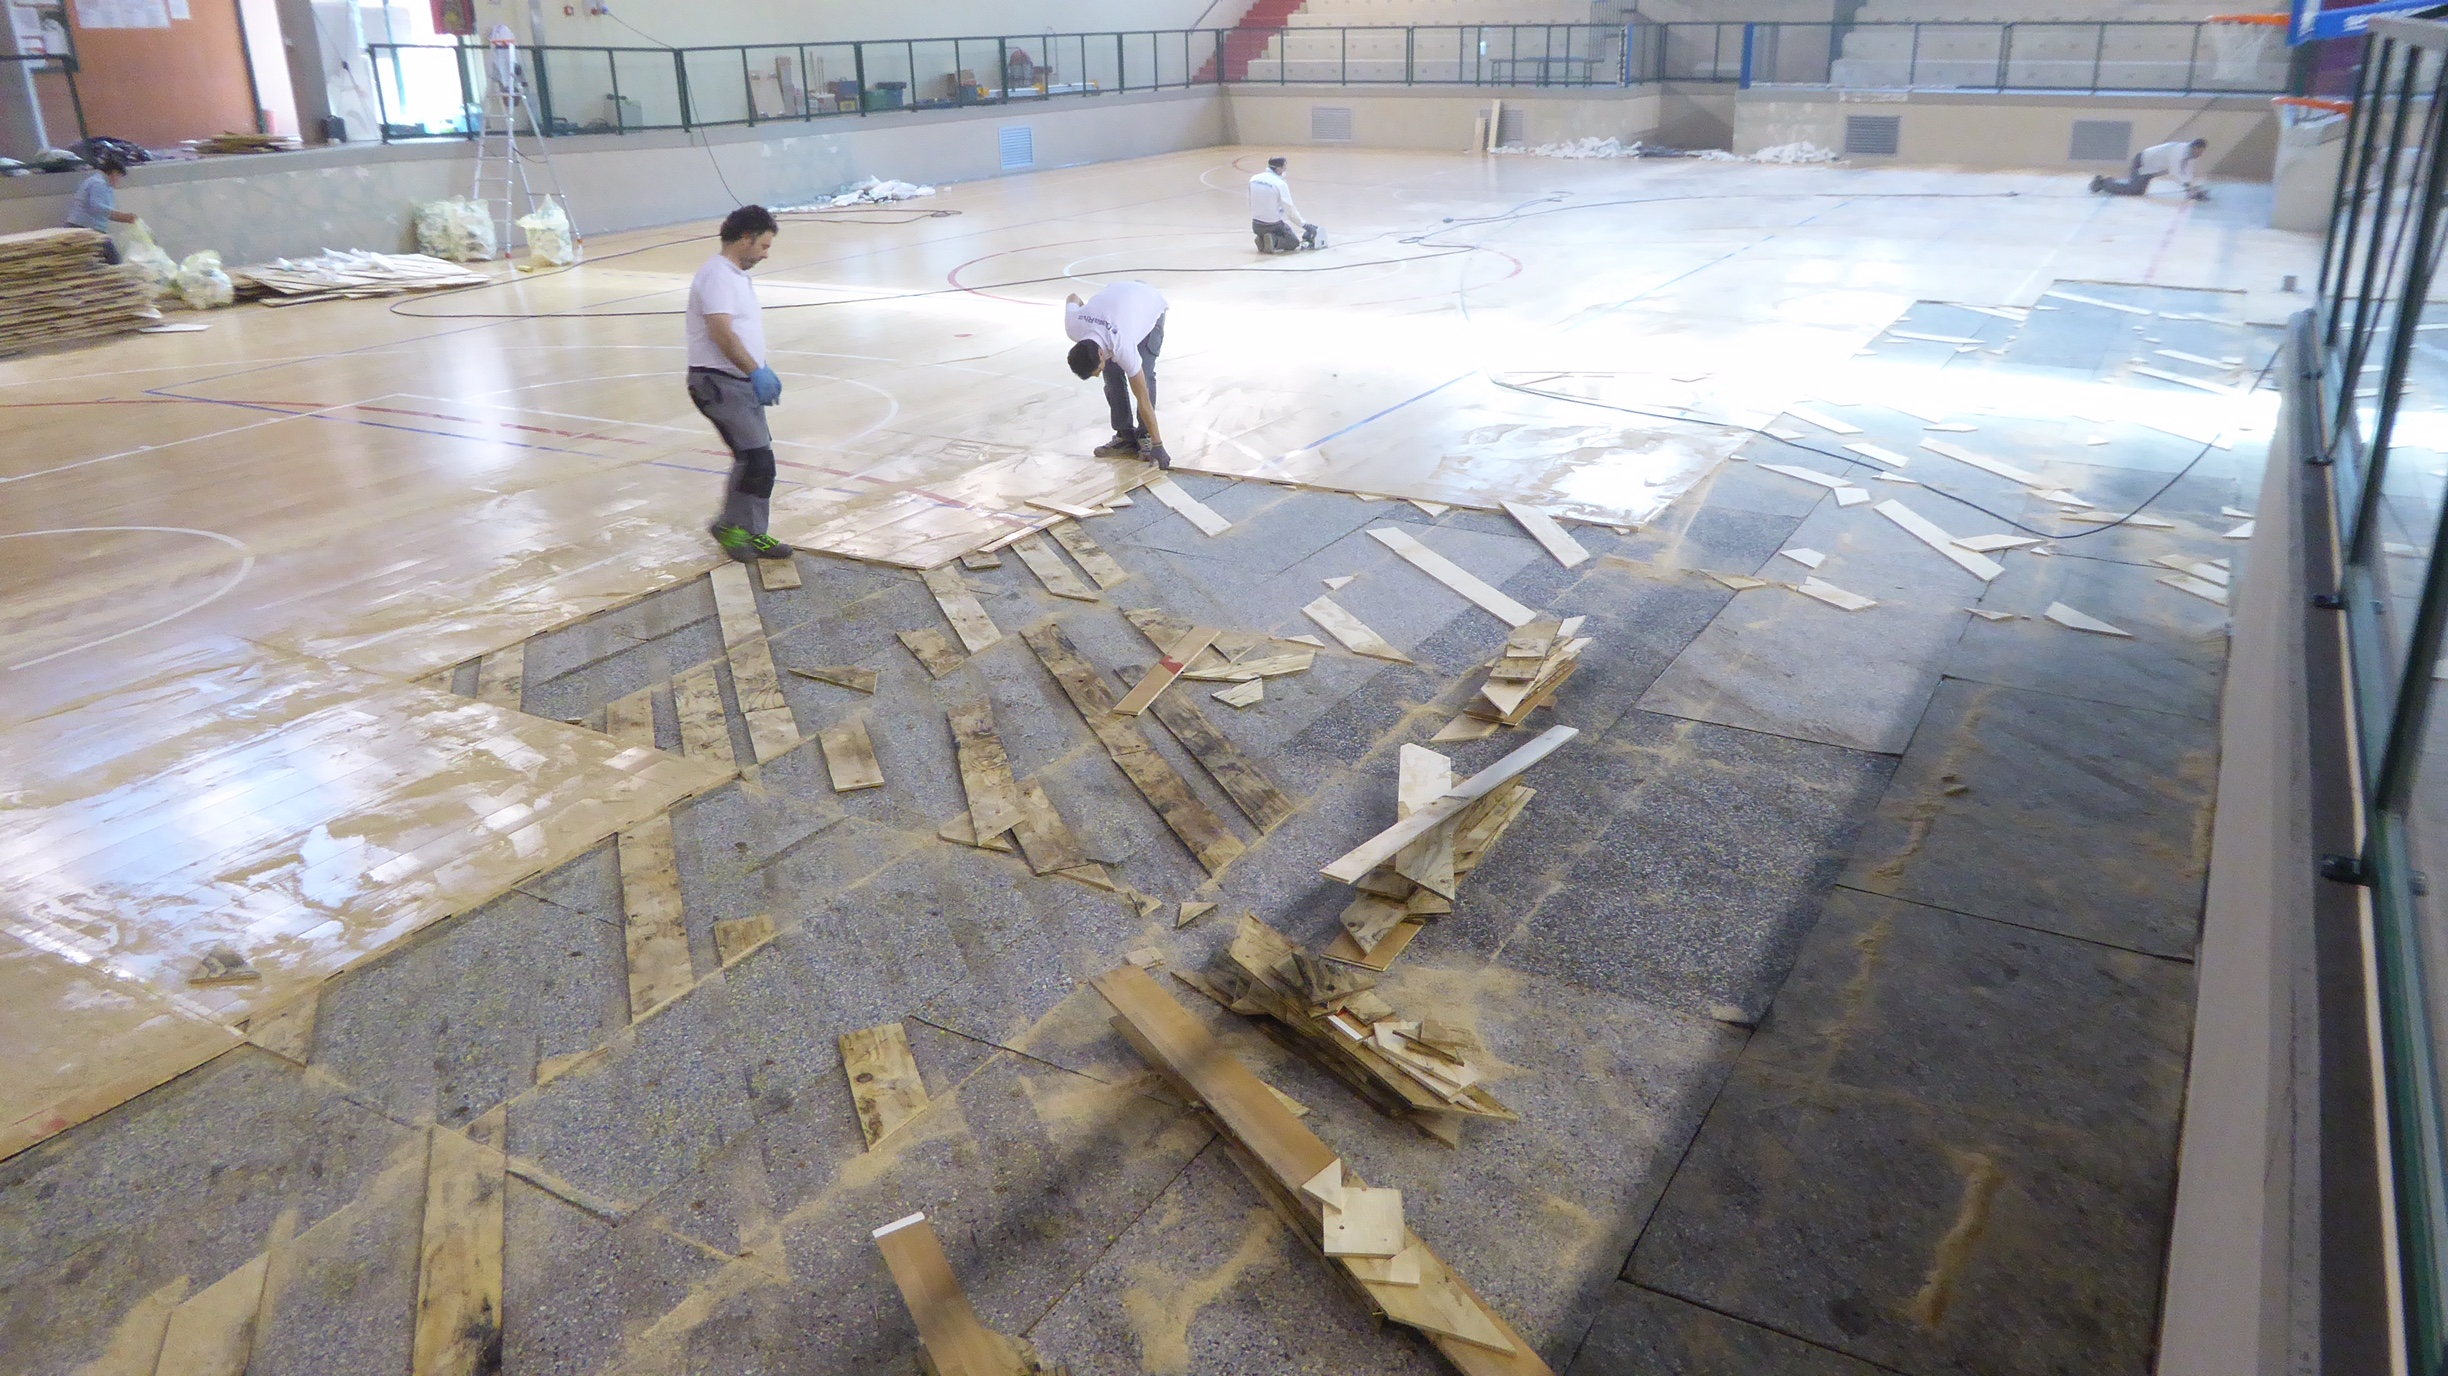 The operations of removing the old flooring